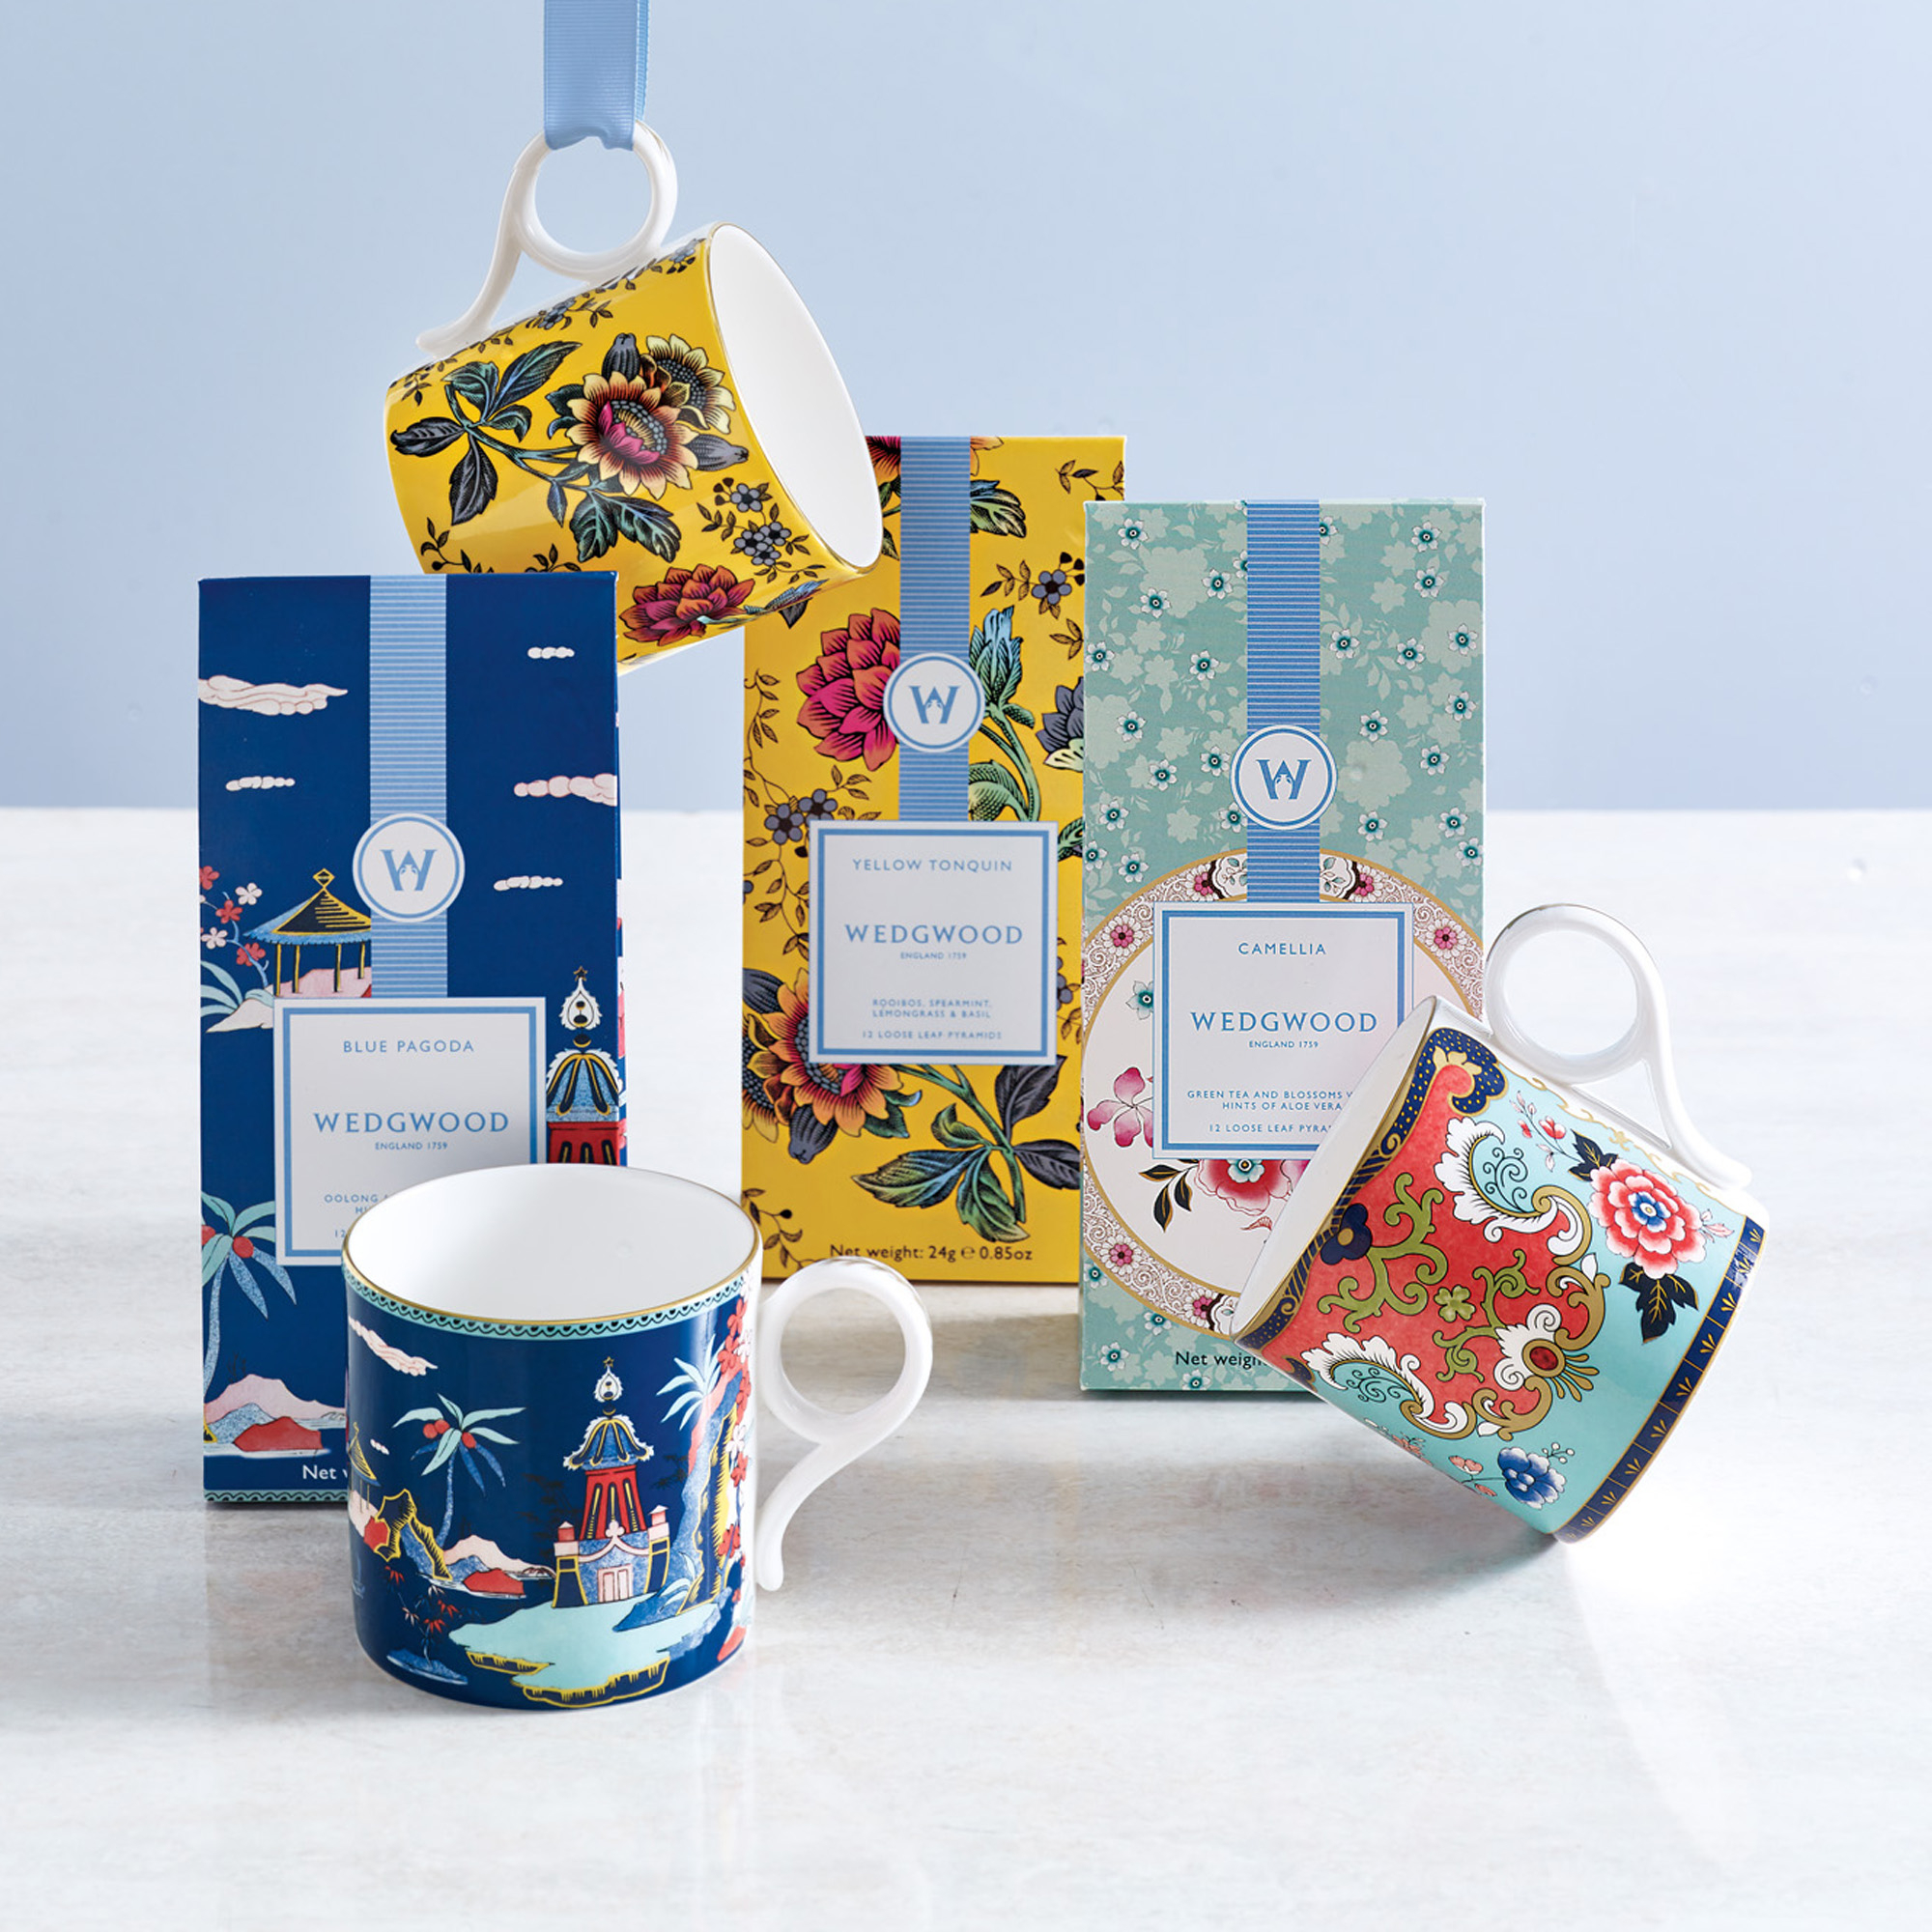 Wedgwood Wonderlust Tea Sets